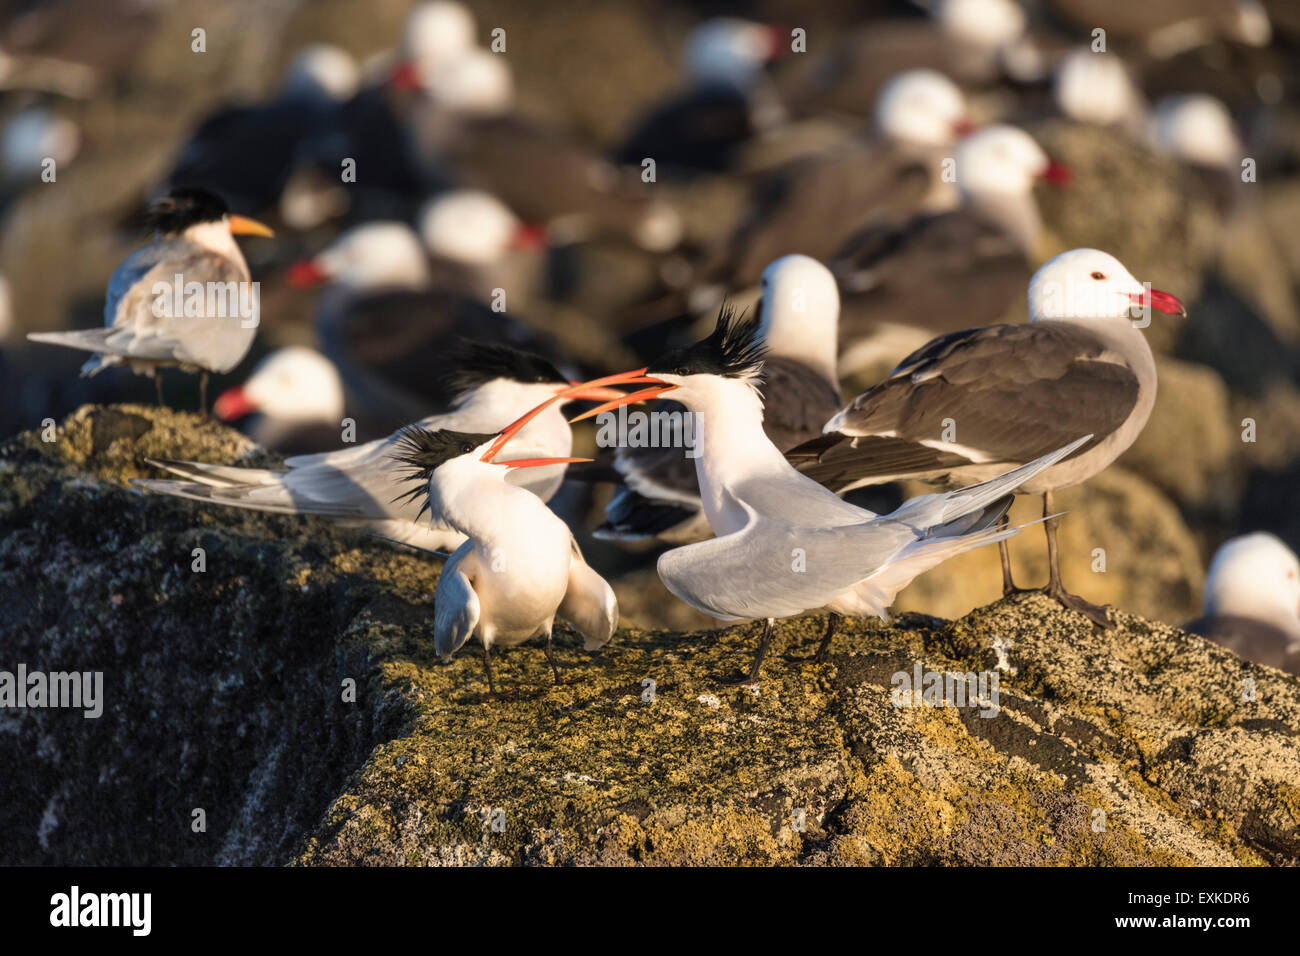 Two Elegant Terns squabble or court on a rocky shore in the afternoon light - Stock Image